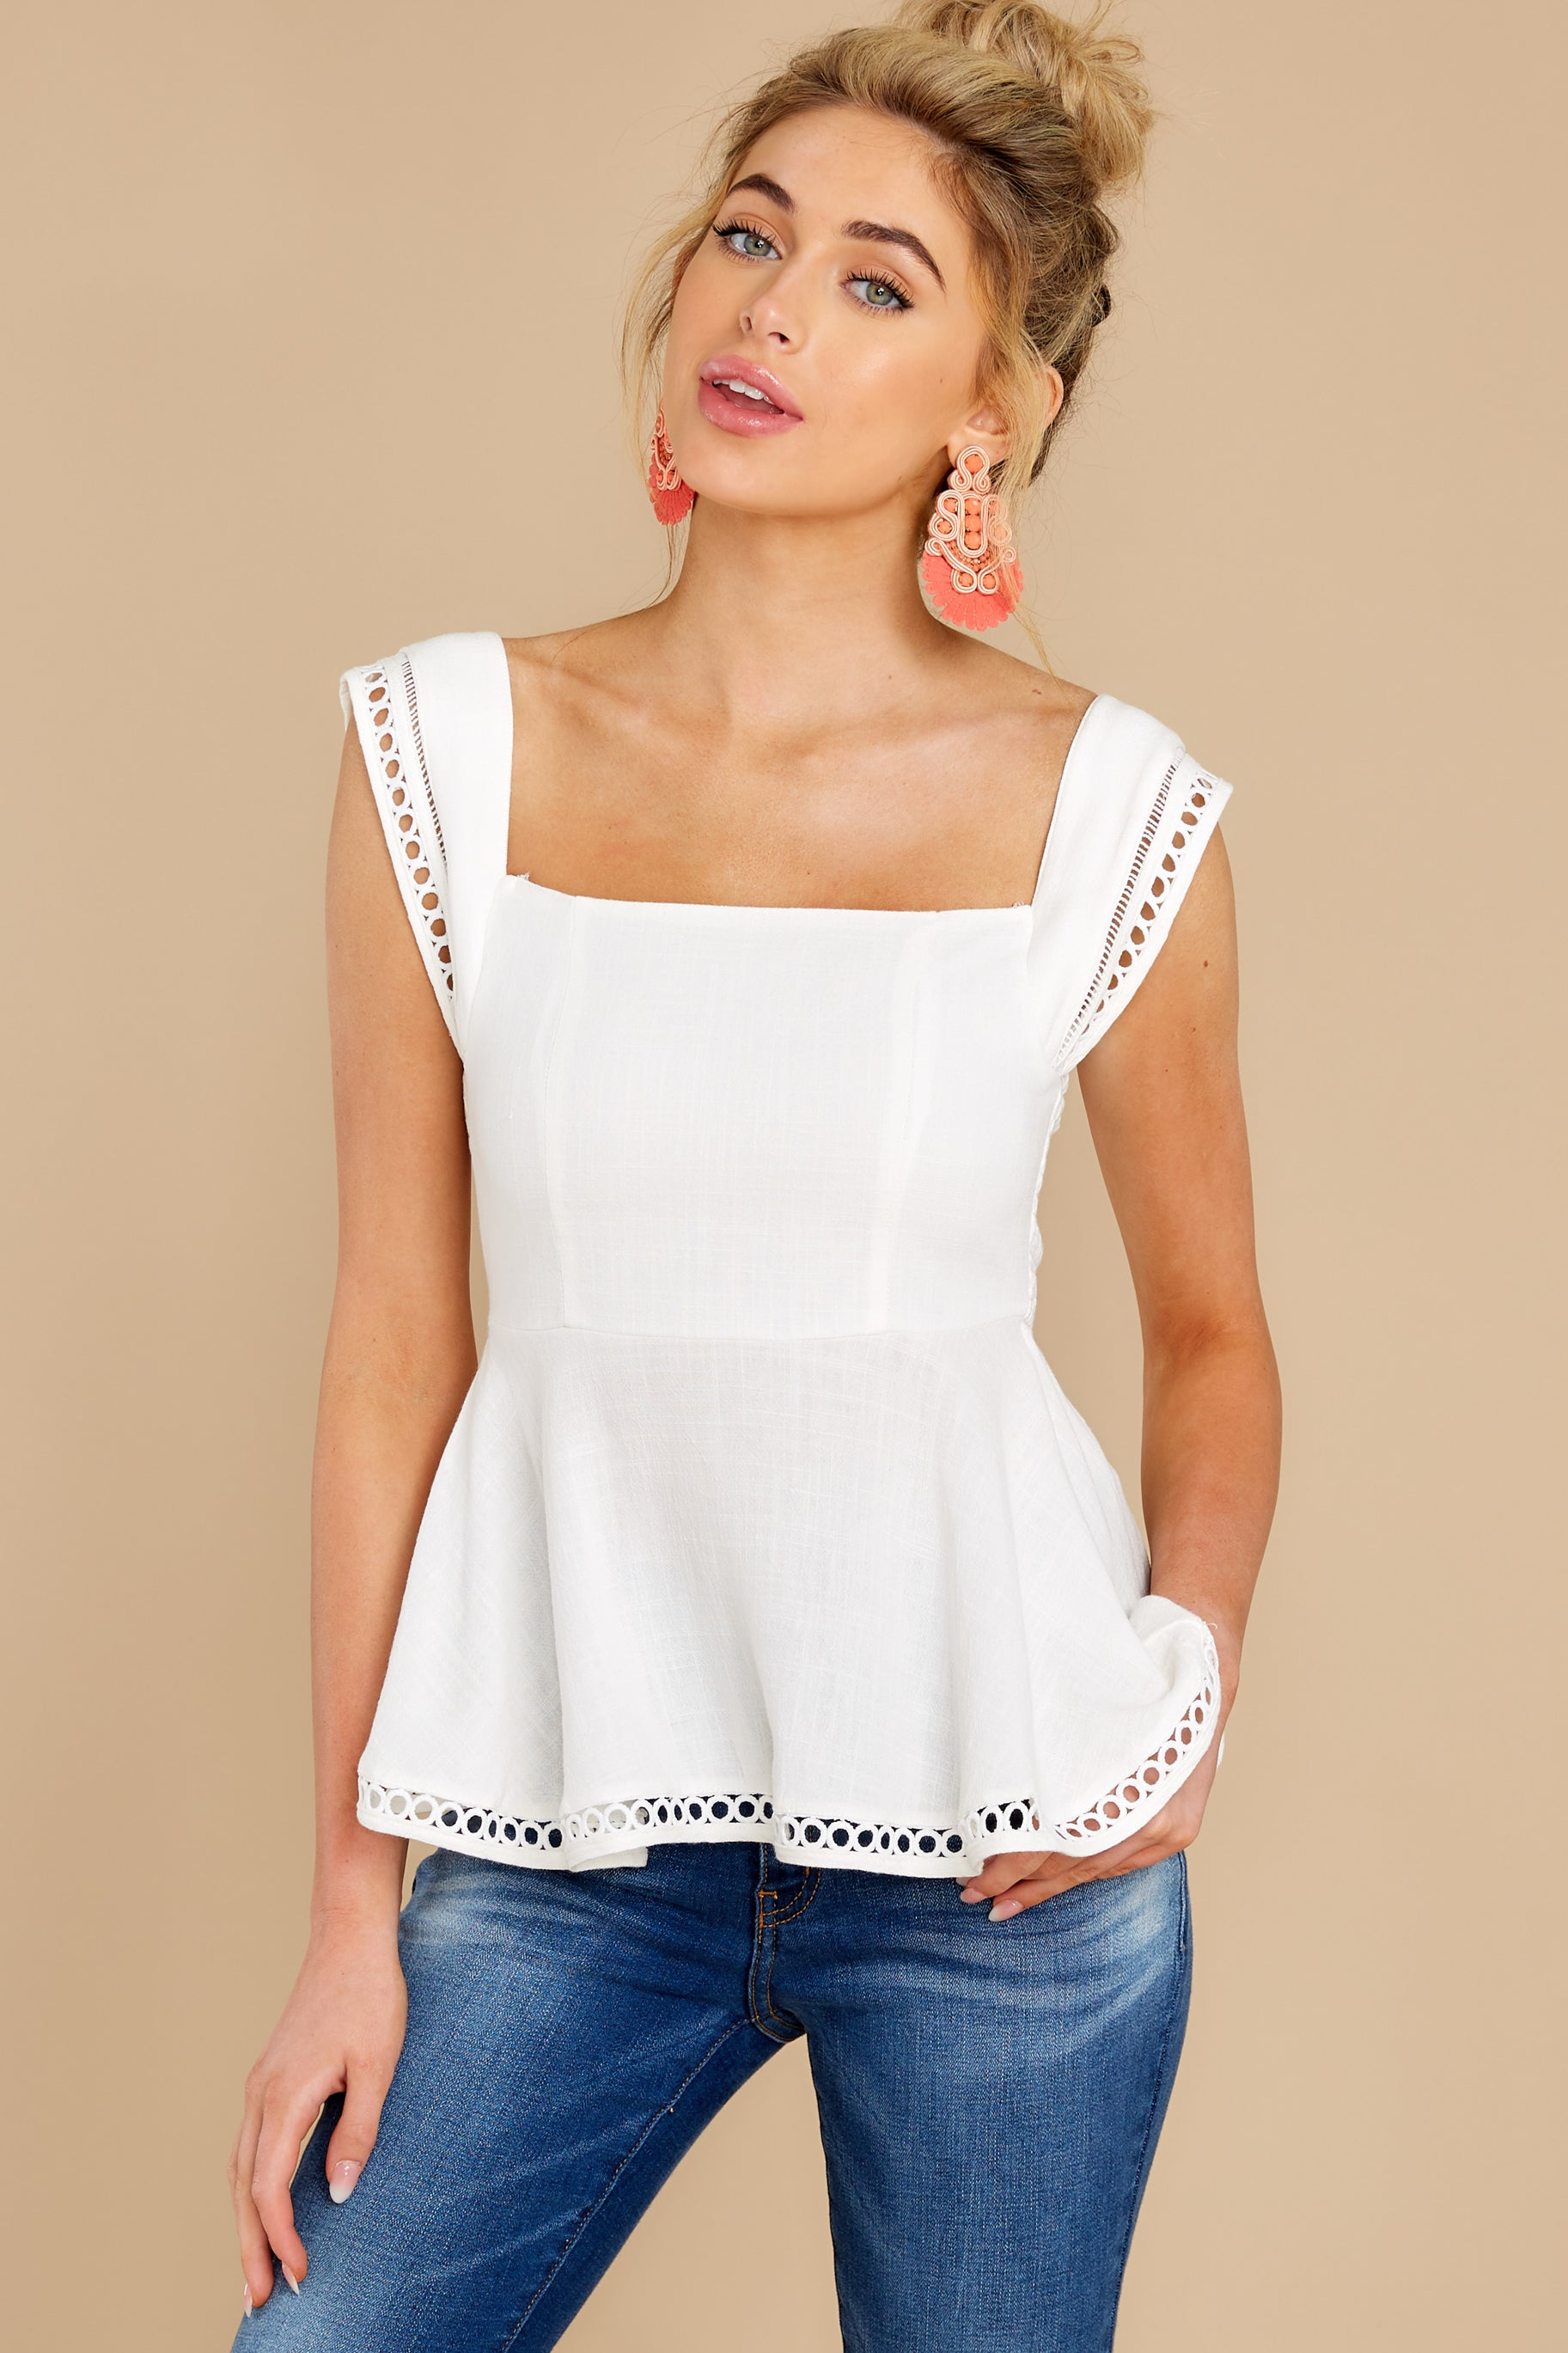 6 Looking Divine White Eyelet Top at reddress.com